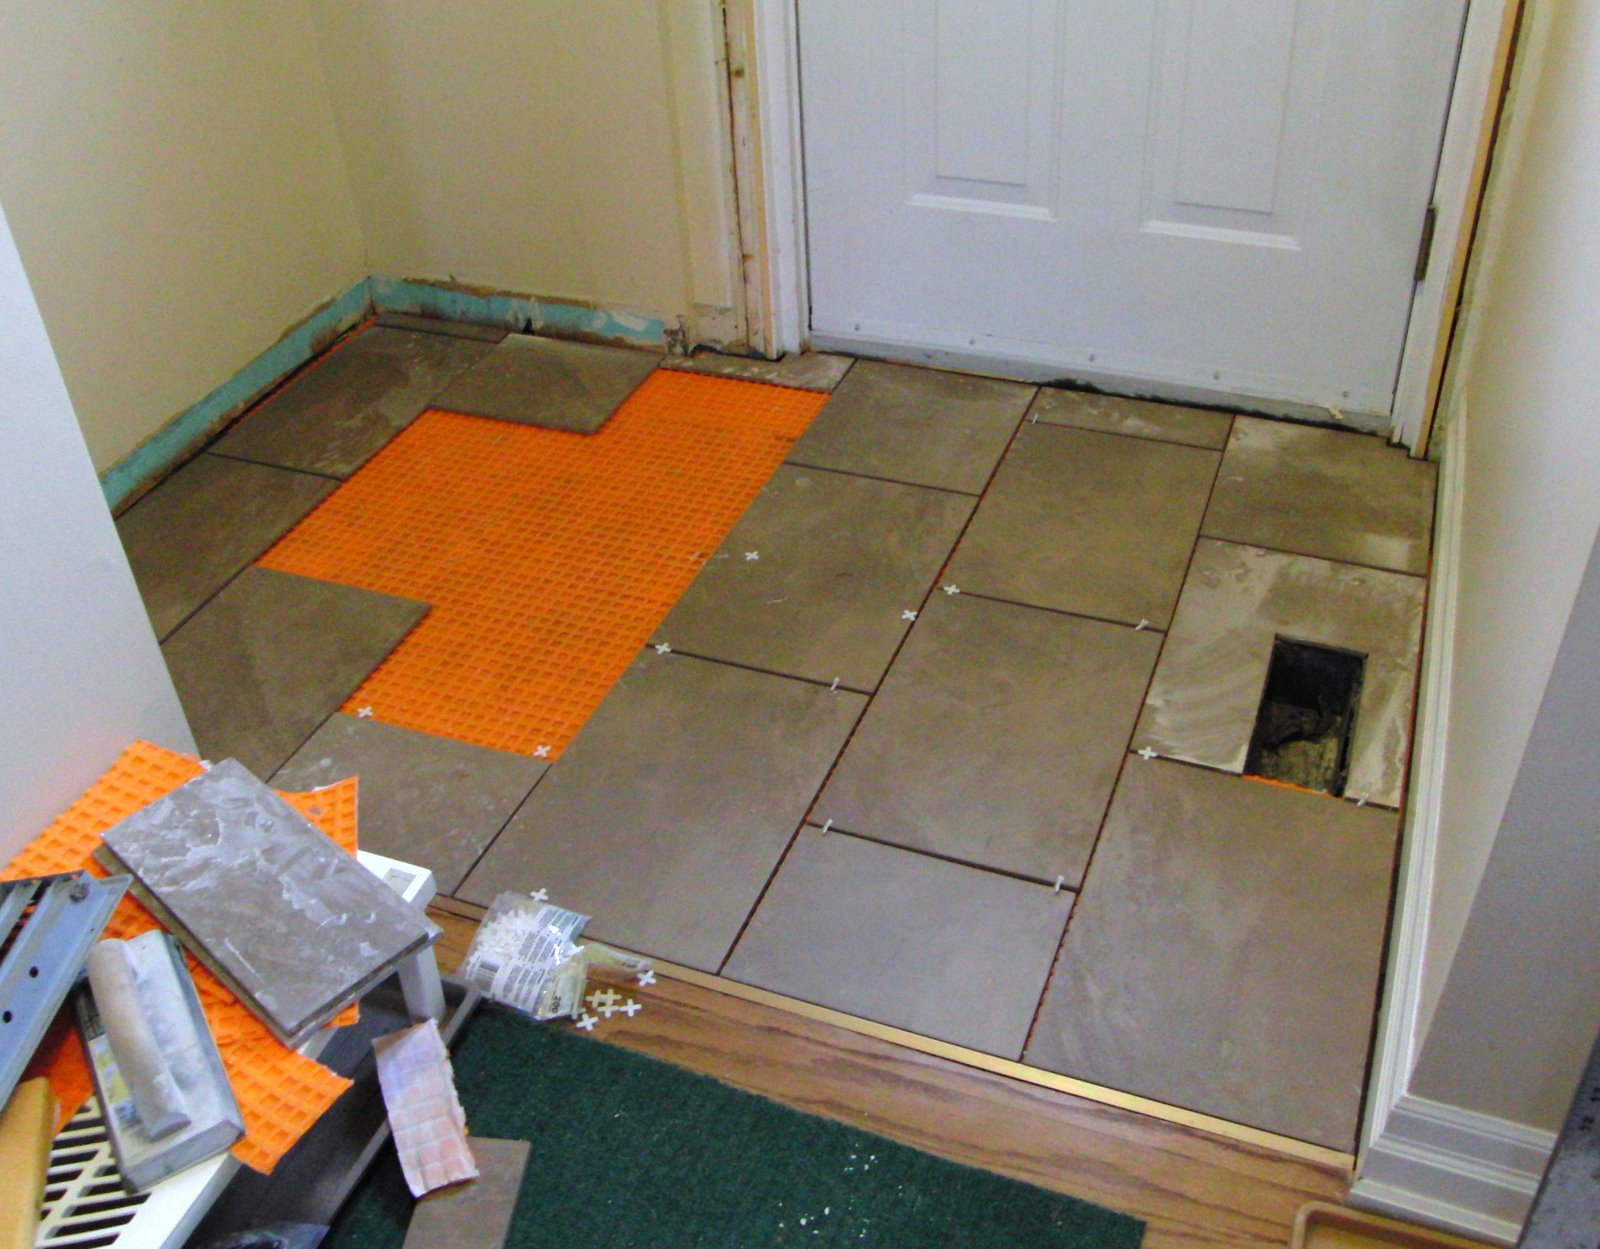 It Is Expensive Which Not So Great But Can Save A Lot Of Work In Removing And Replacing Ed Tiles That Too